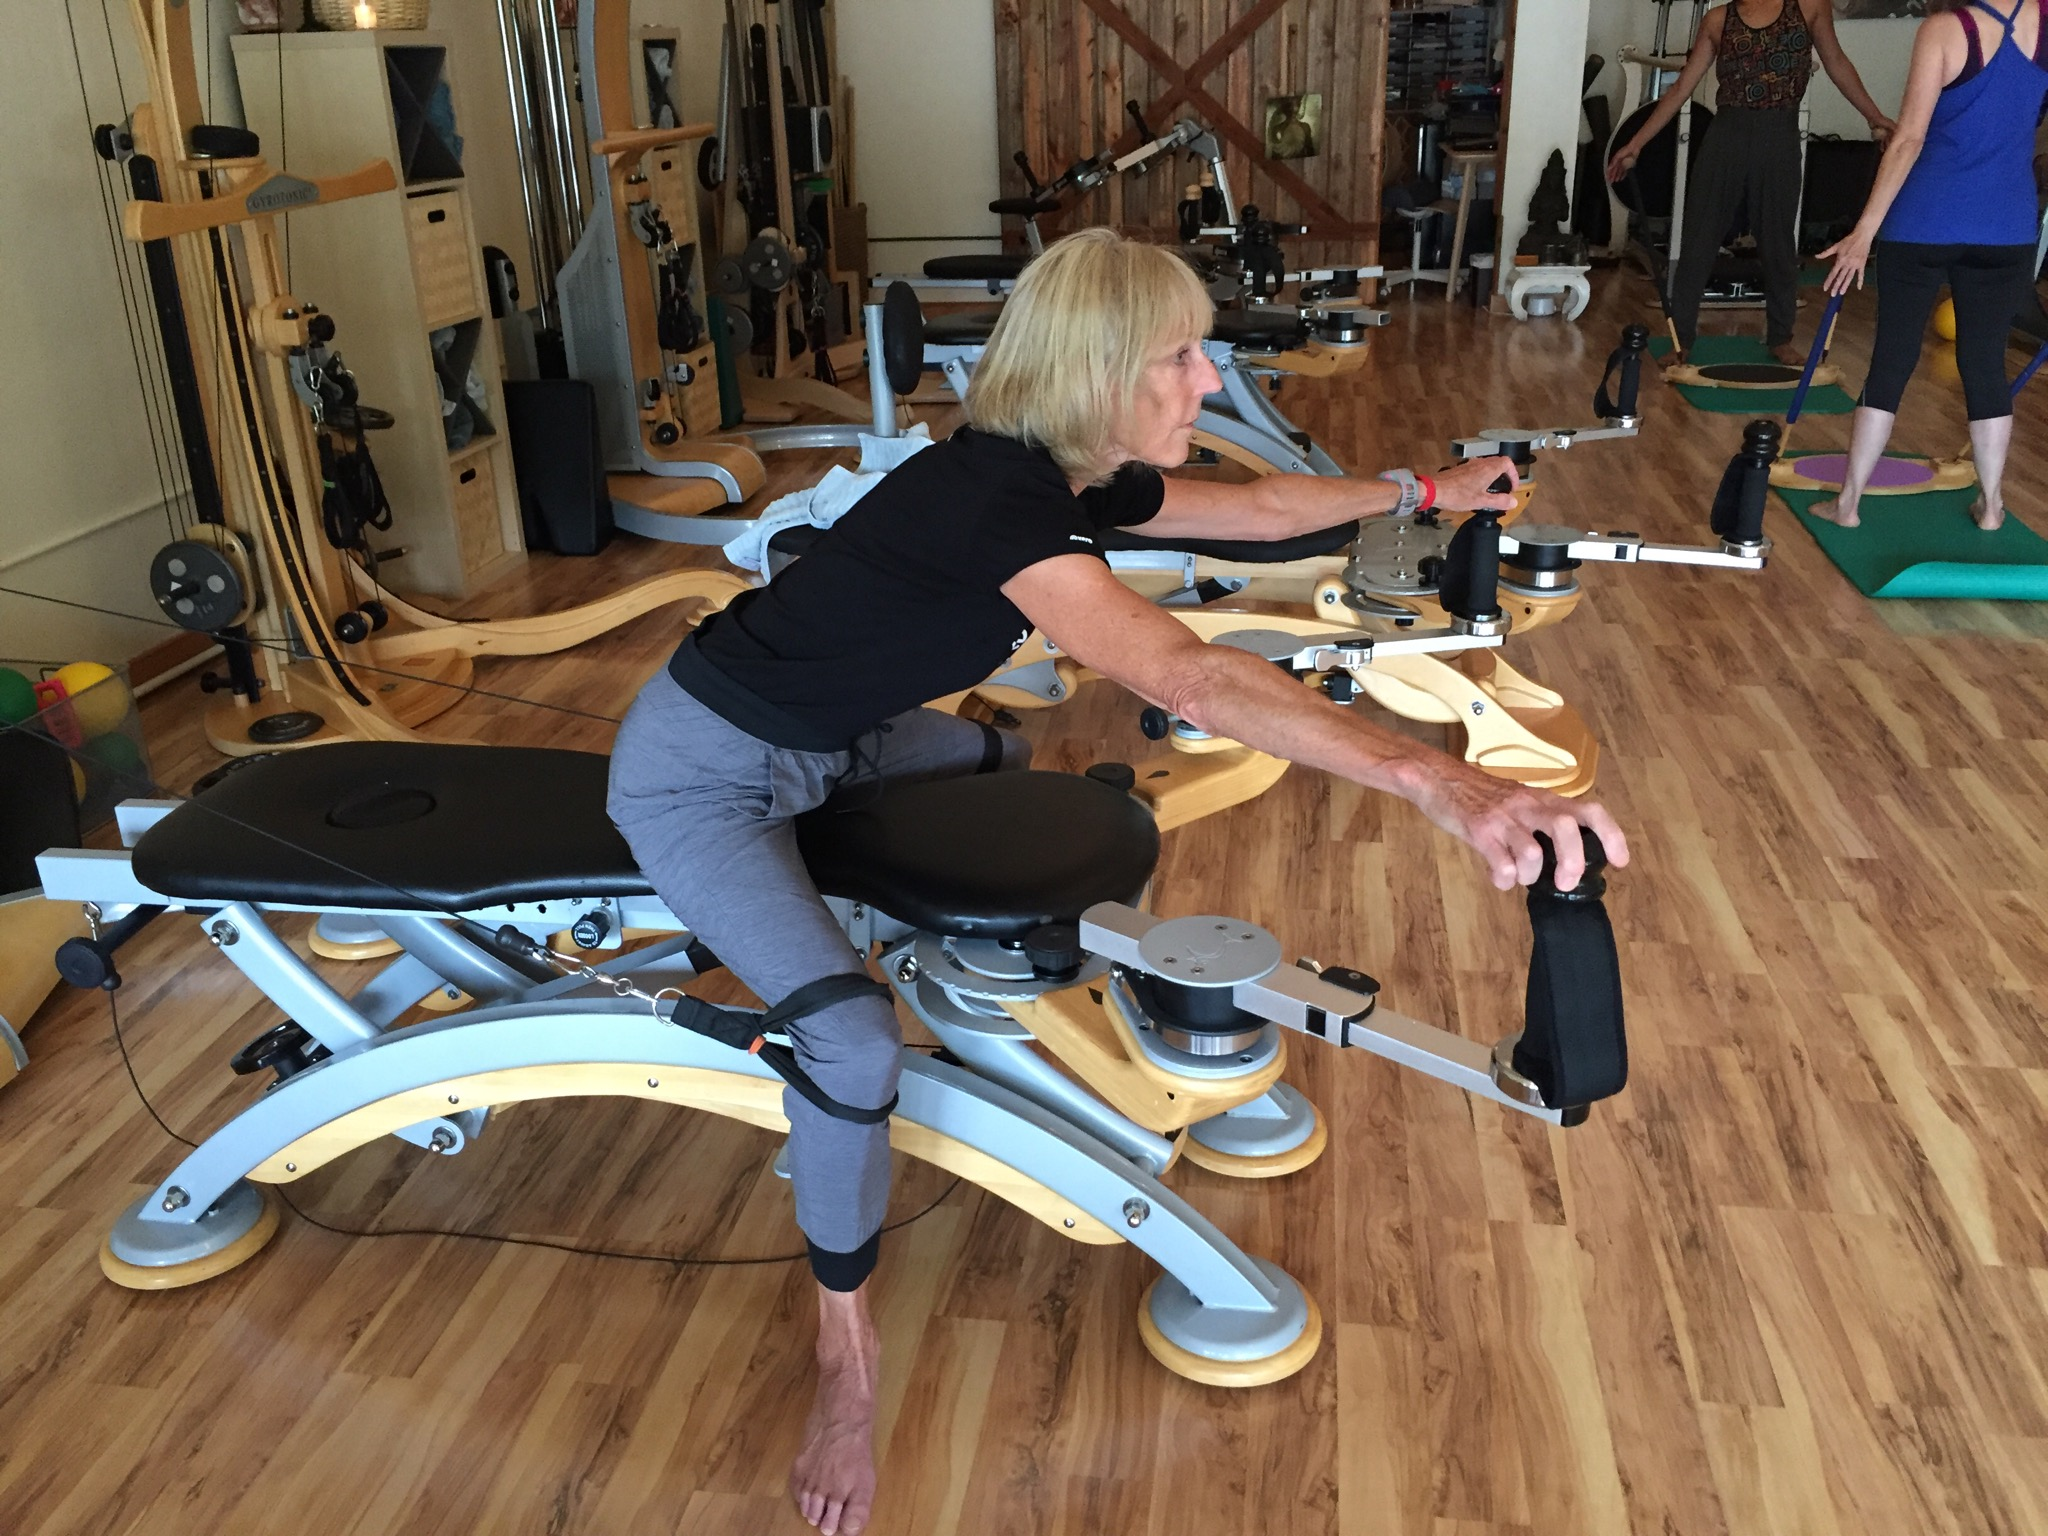 Gyrotonics sessions were/are a life saver, helping loosen shoulder, flex arm, any type of movement!